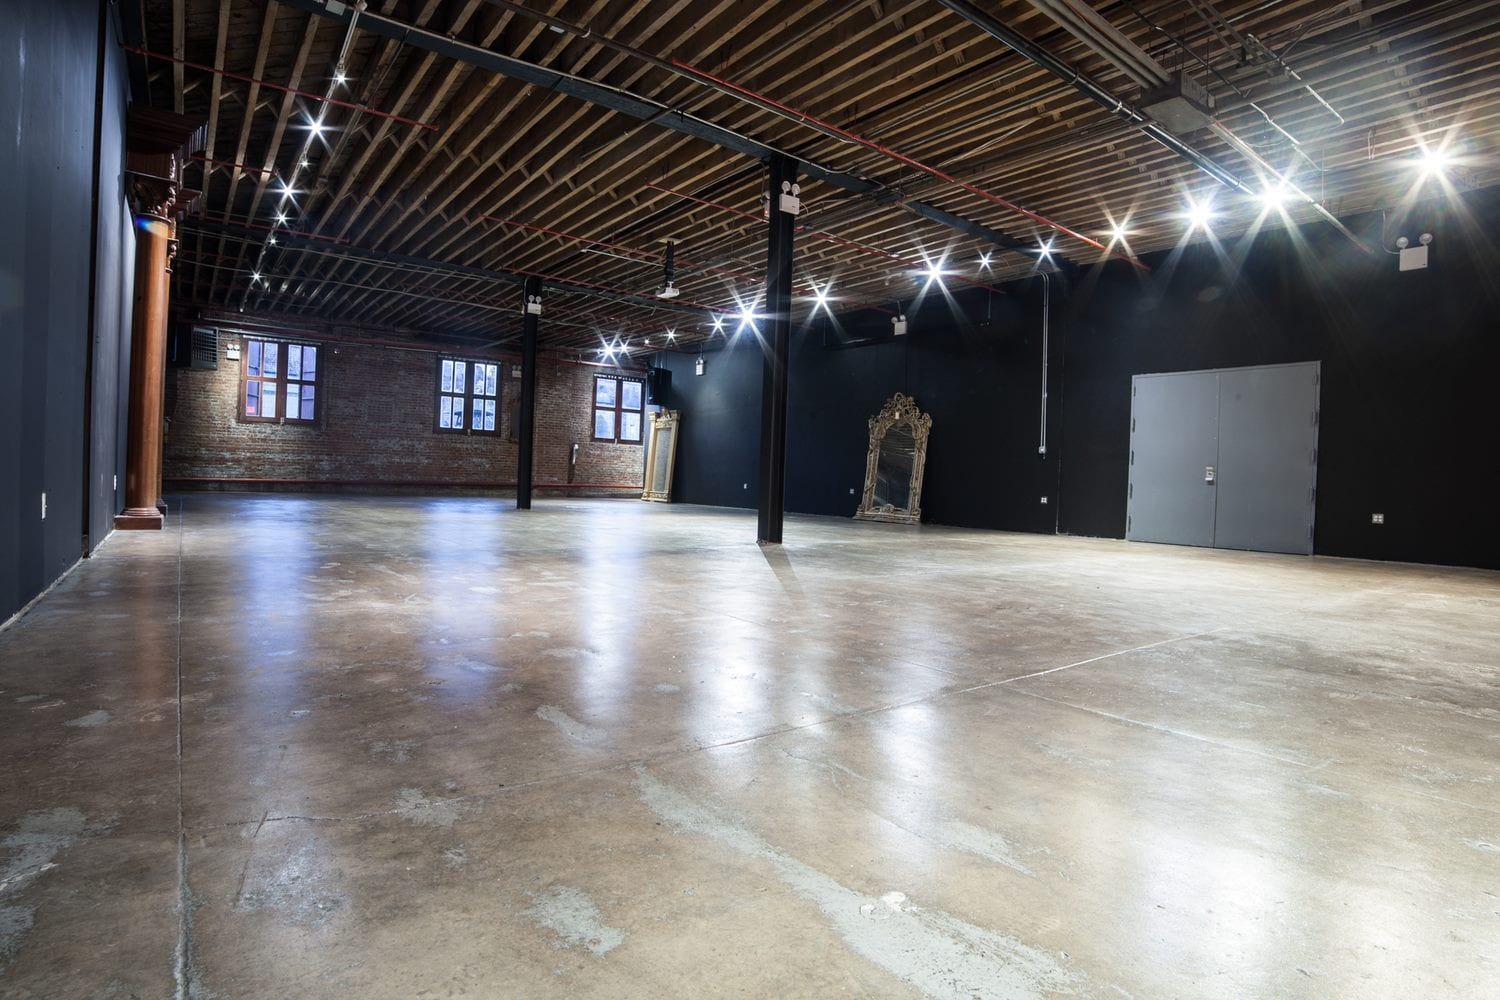 bushwick-venues-warehouse